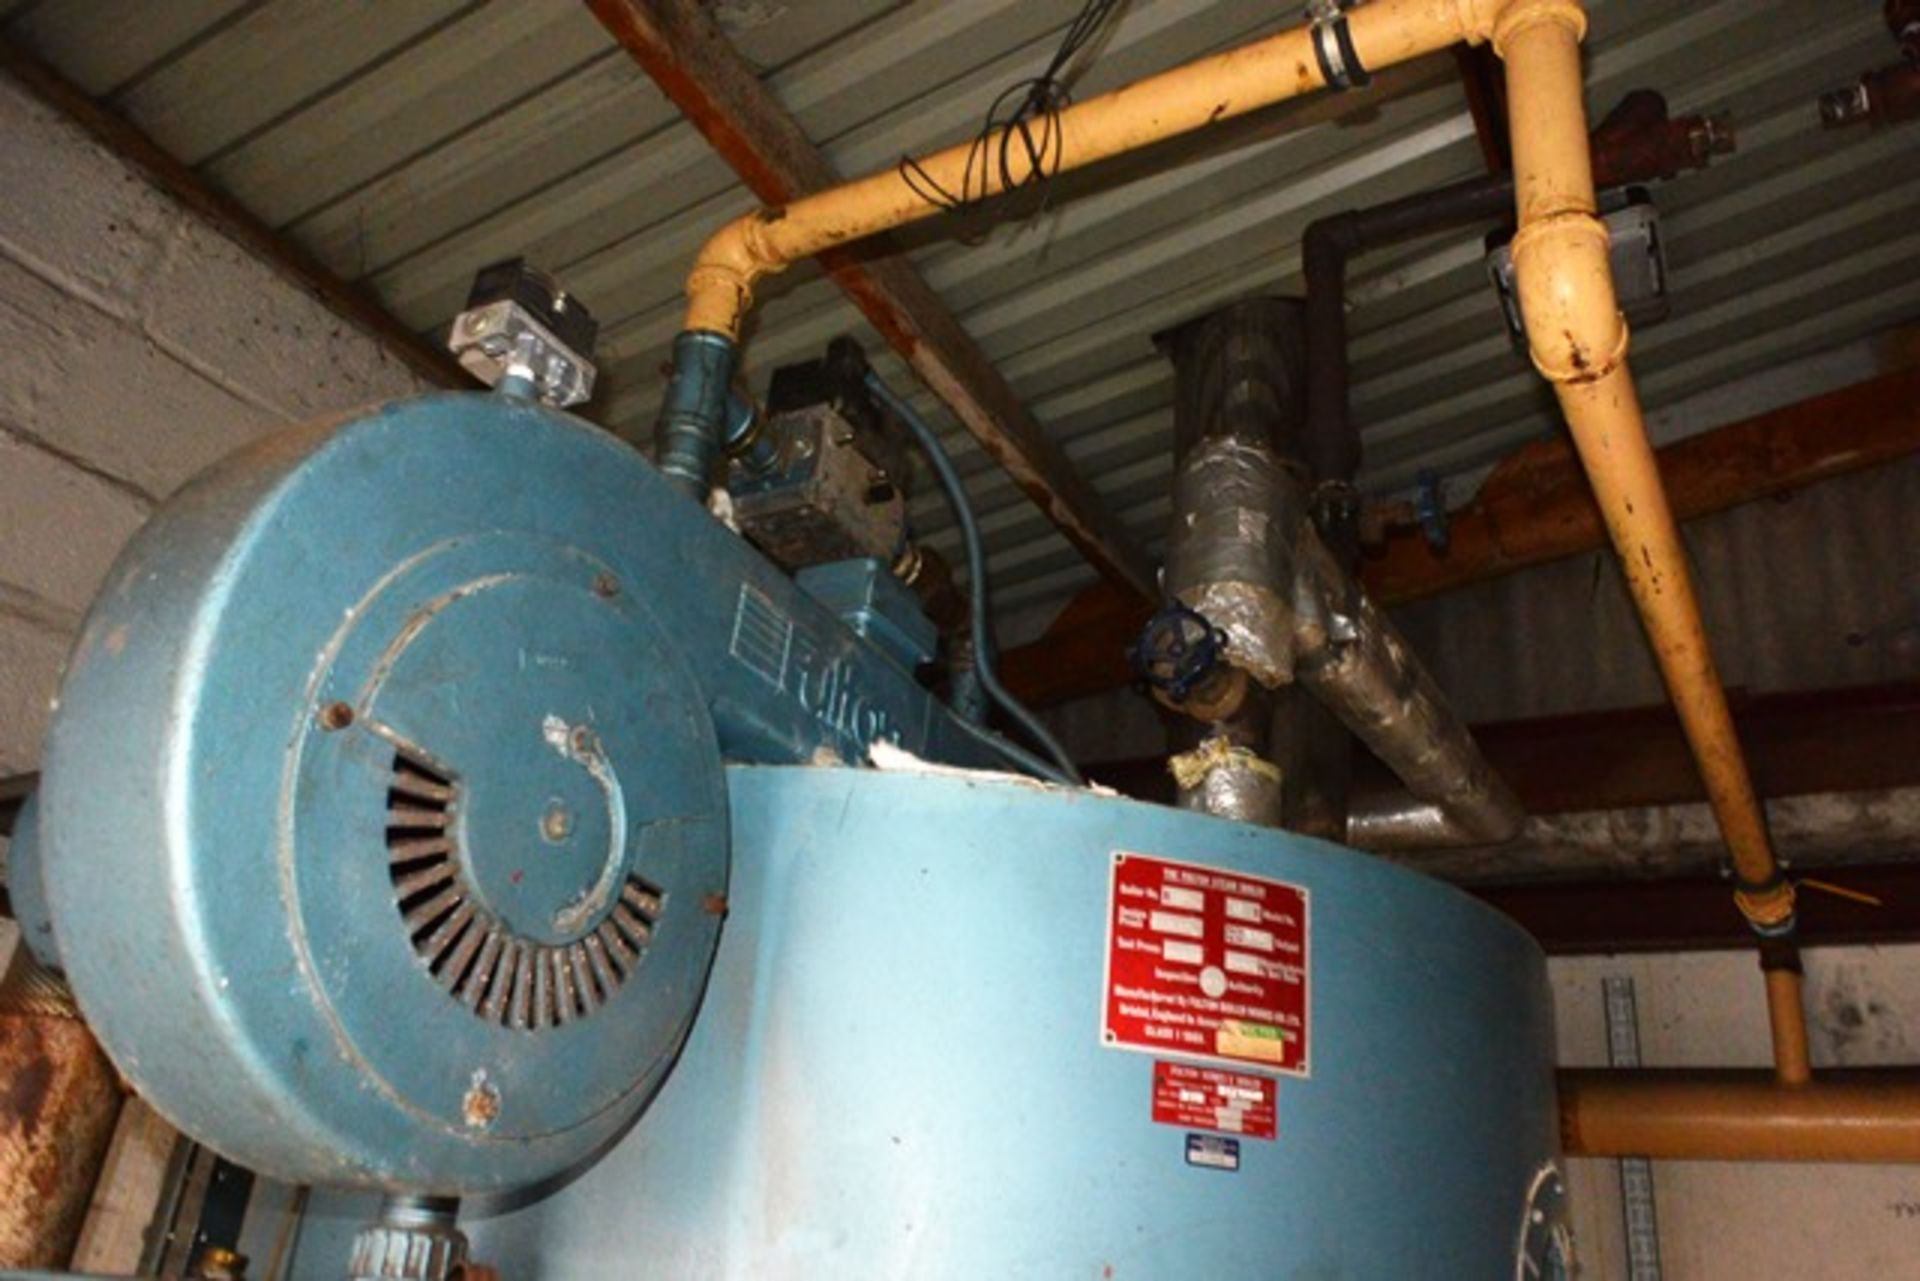 Fulton steam boiler, model 30E, serial no. B7026, design pressure 895 N/mm², test pressure /34N/ - Image 10 of 11